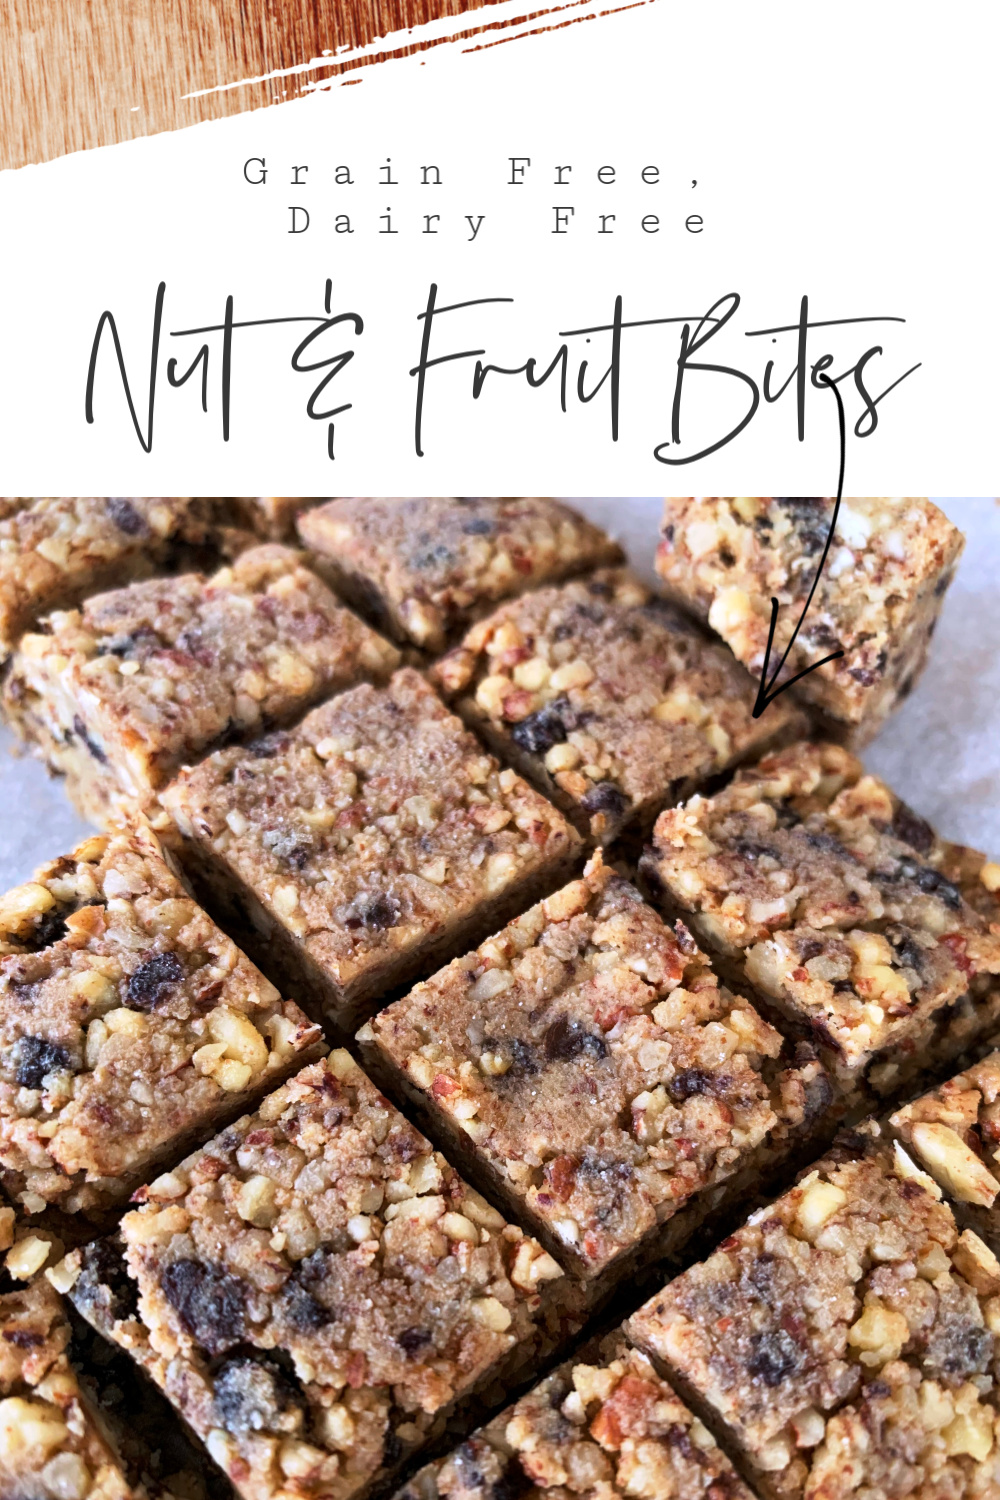 Grain Free Dairy Free Delicious Nut and Fruit Freezer Bites